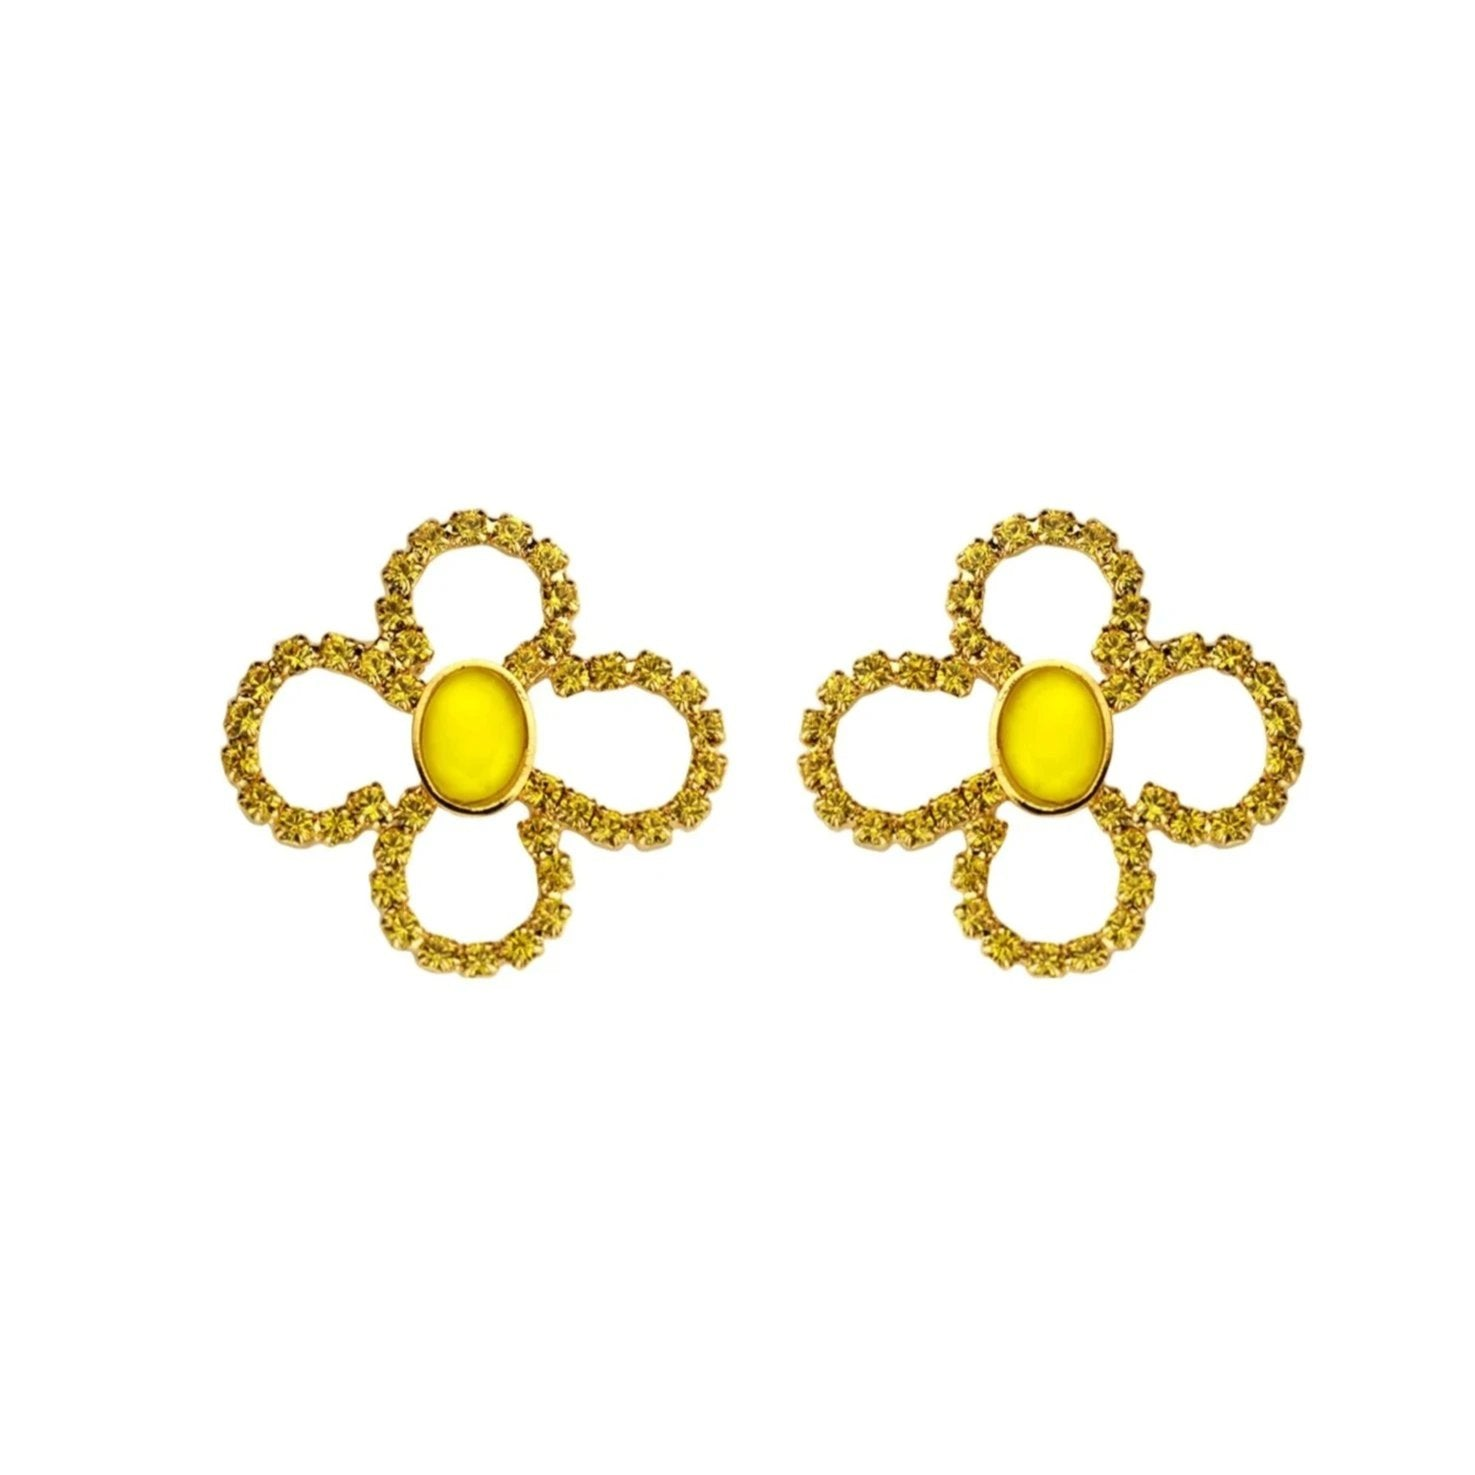 Lola light yellow earrings - Souvenirs de Pomme